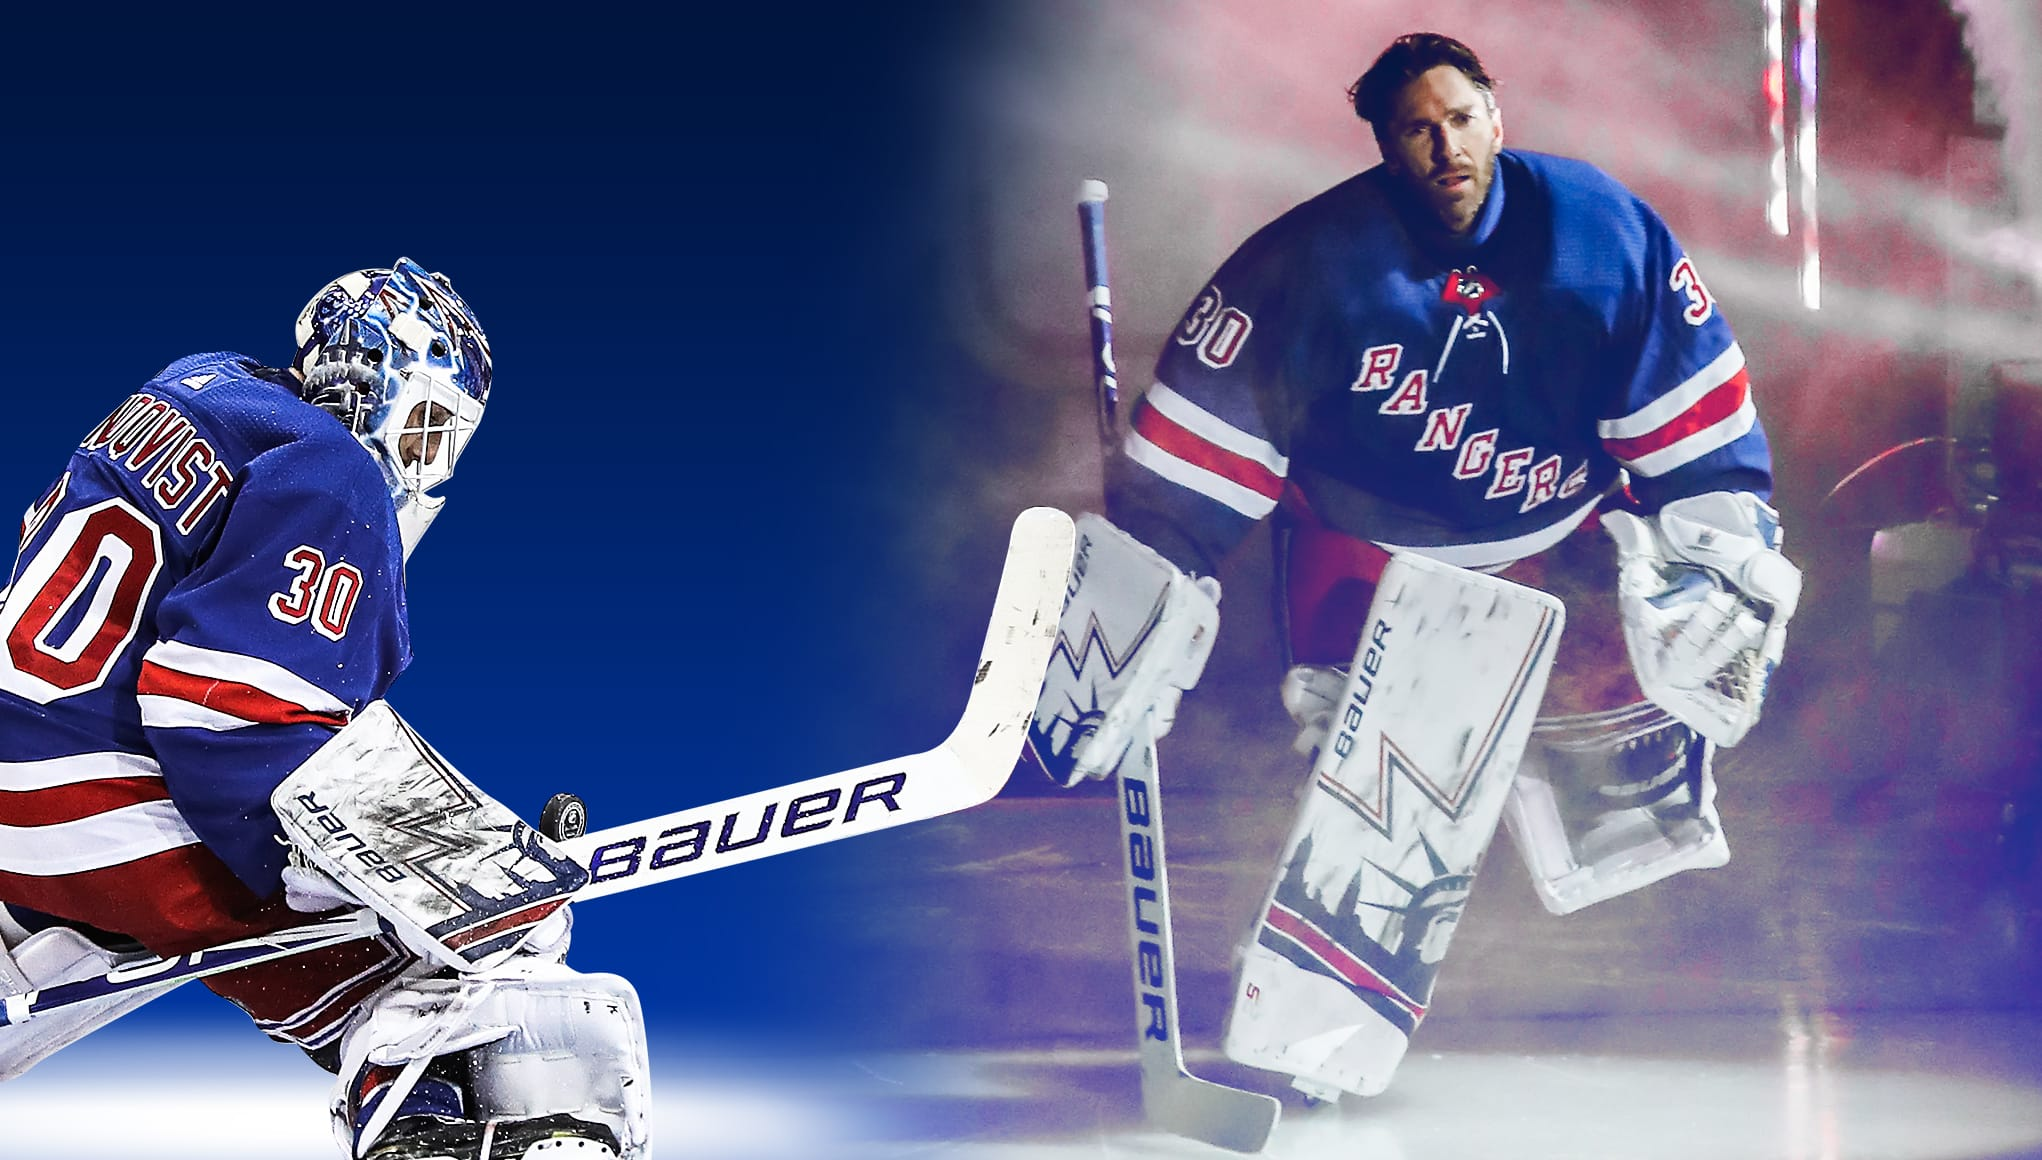 promo code a6ccf 8b894 New York Rangers: Henrik Lundqvist is carrying the ...